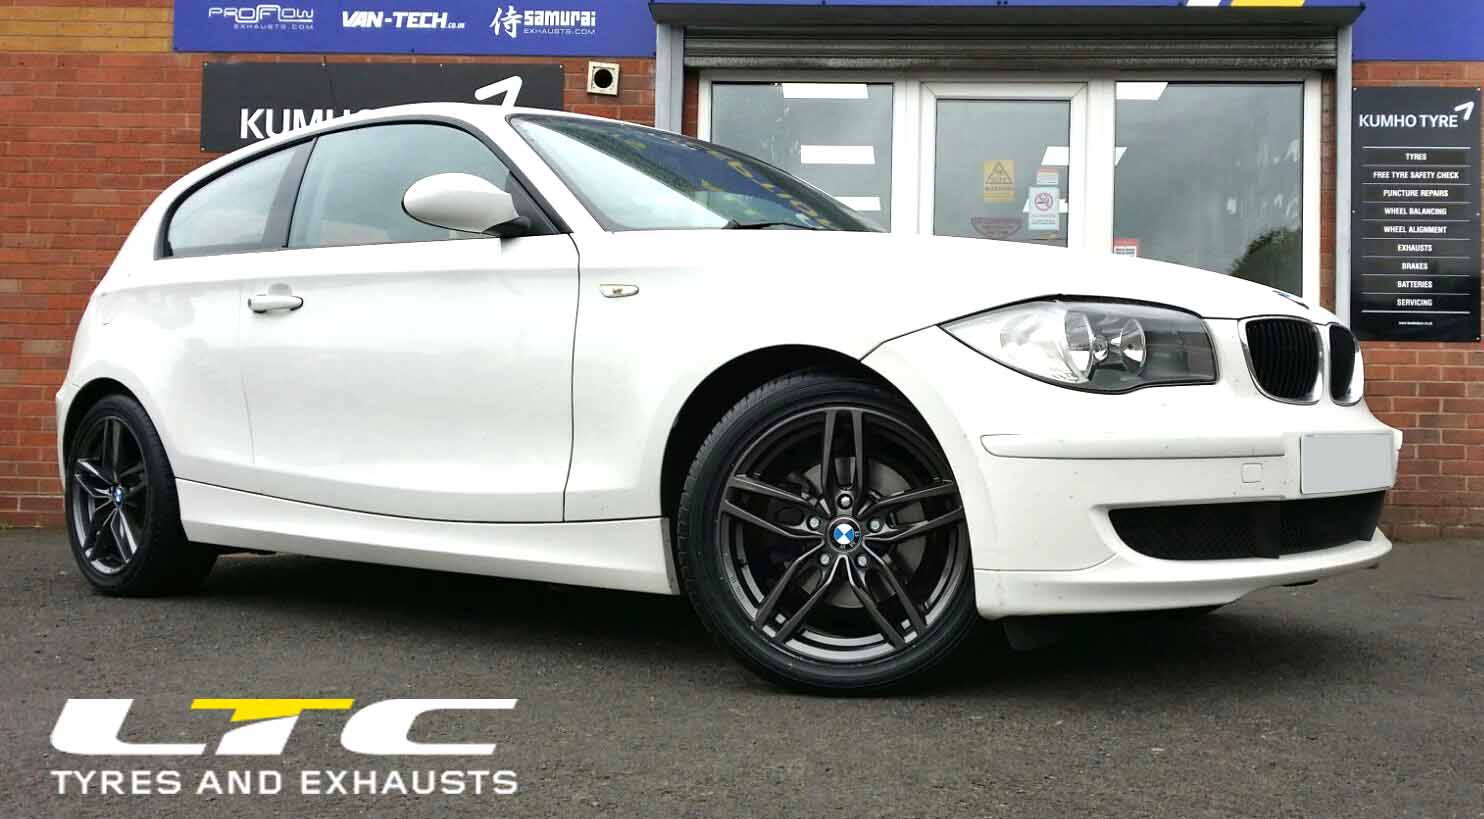 Drc Drs Alloy Wheels In Gun Metal Finish And Set Of 225 45 17 Tyres Fitted To Bmw 1 Series